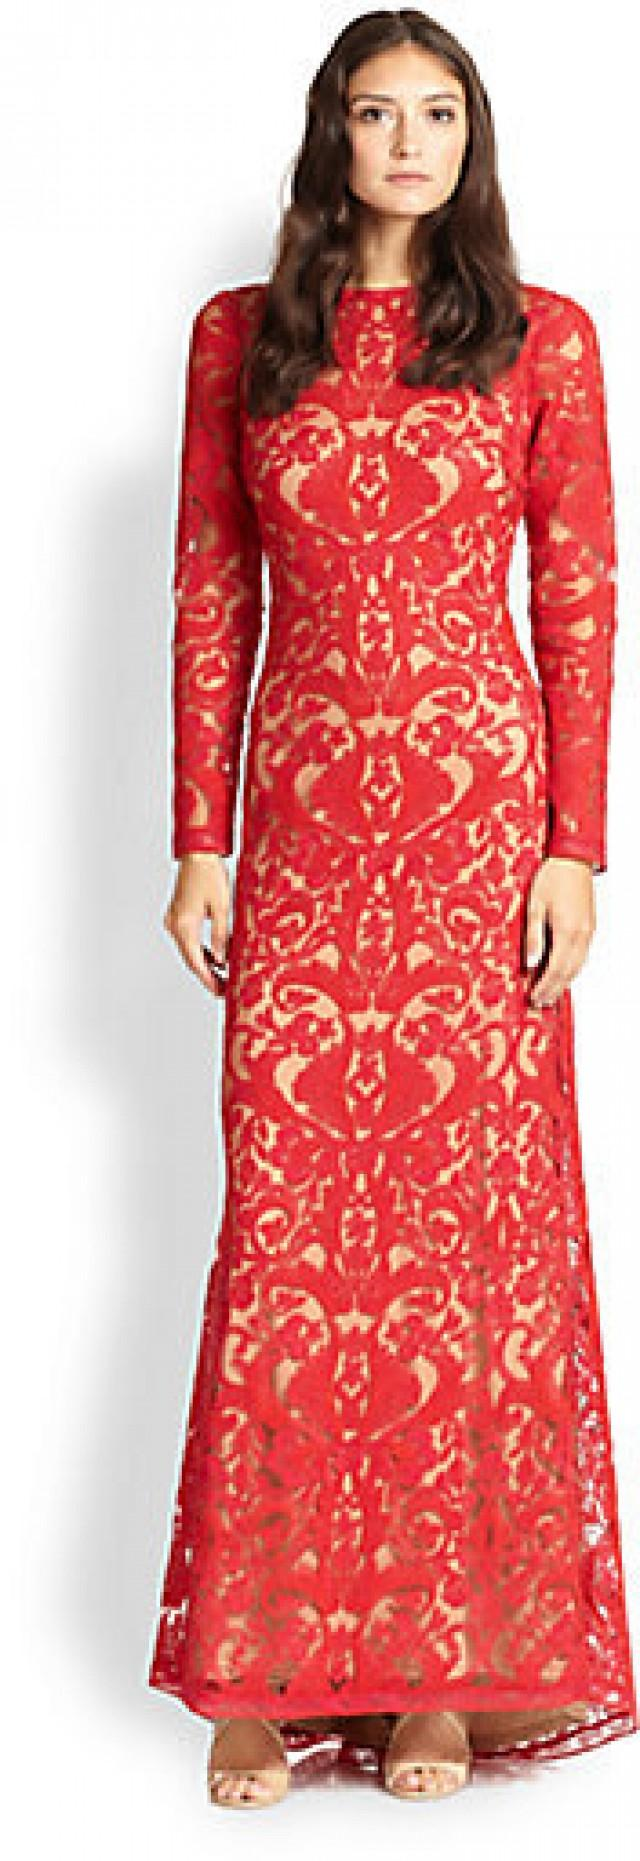 Lace Wedding - Tadashi Shoji Cord-Embroidered Lace Gown #2167398 ...